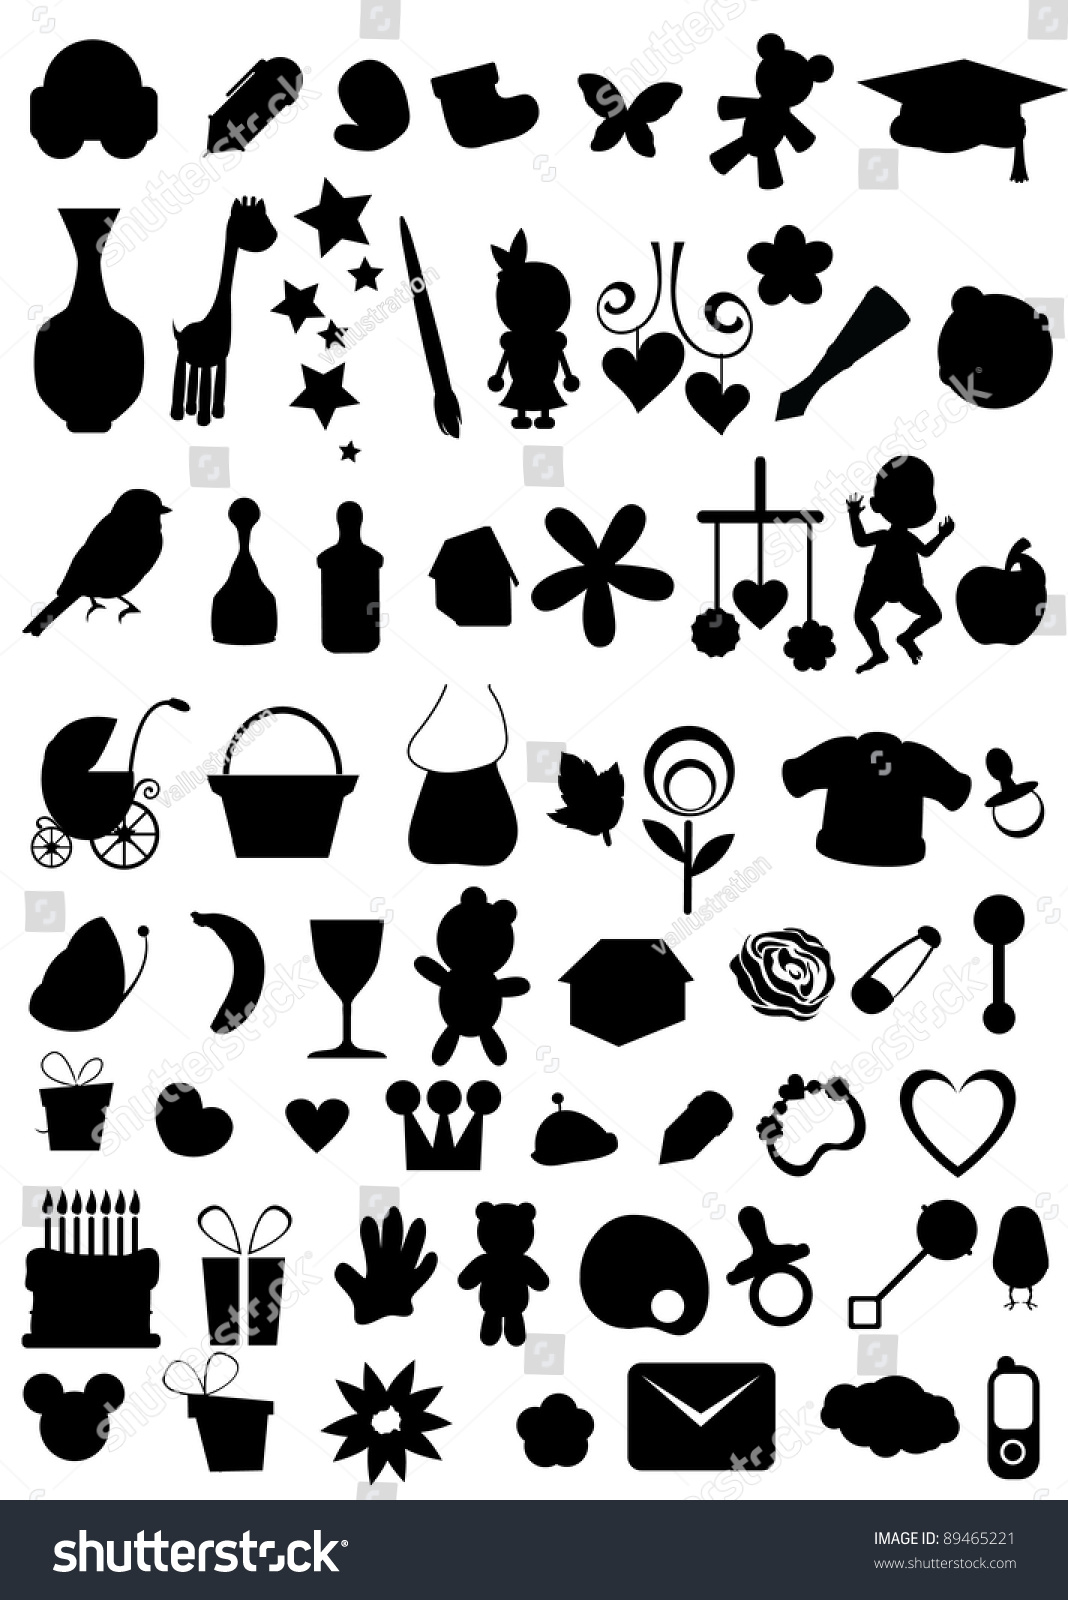 Silhouettes Object Collections Web Others Stock Vector 89465221 Shutterstock